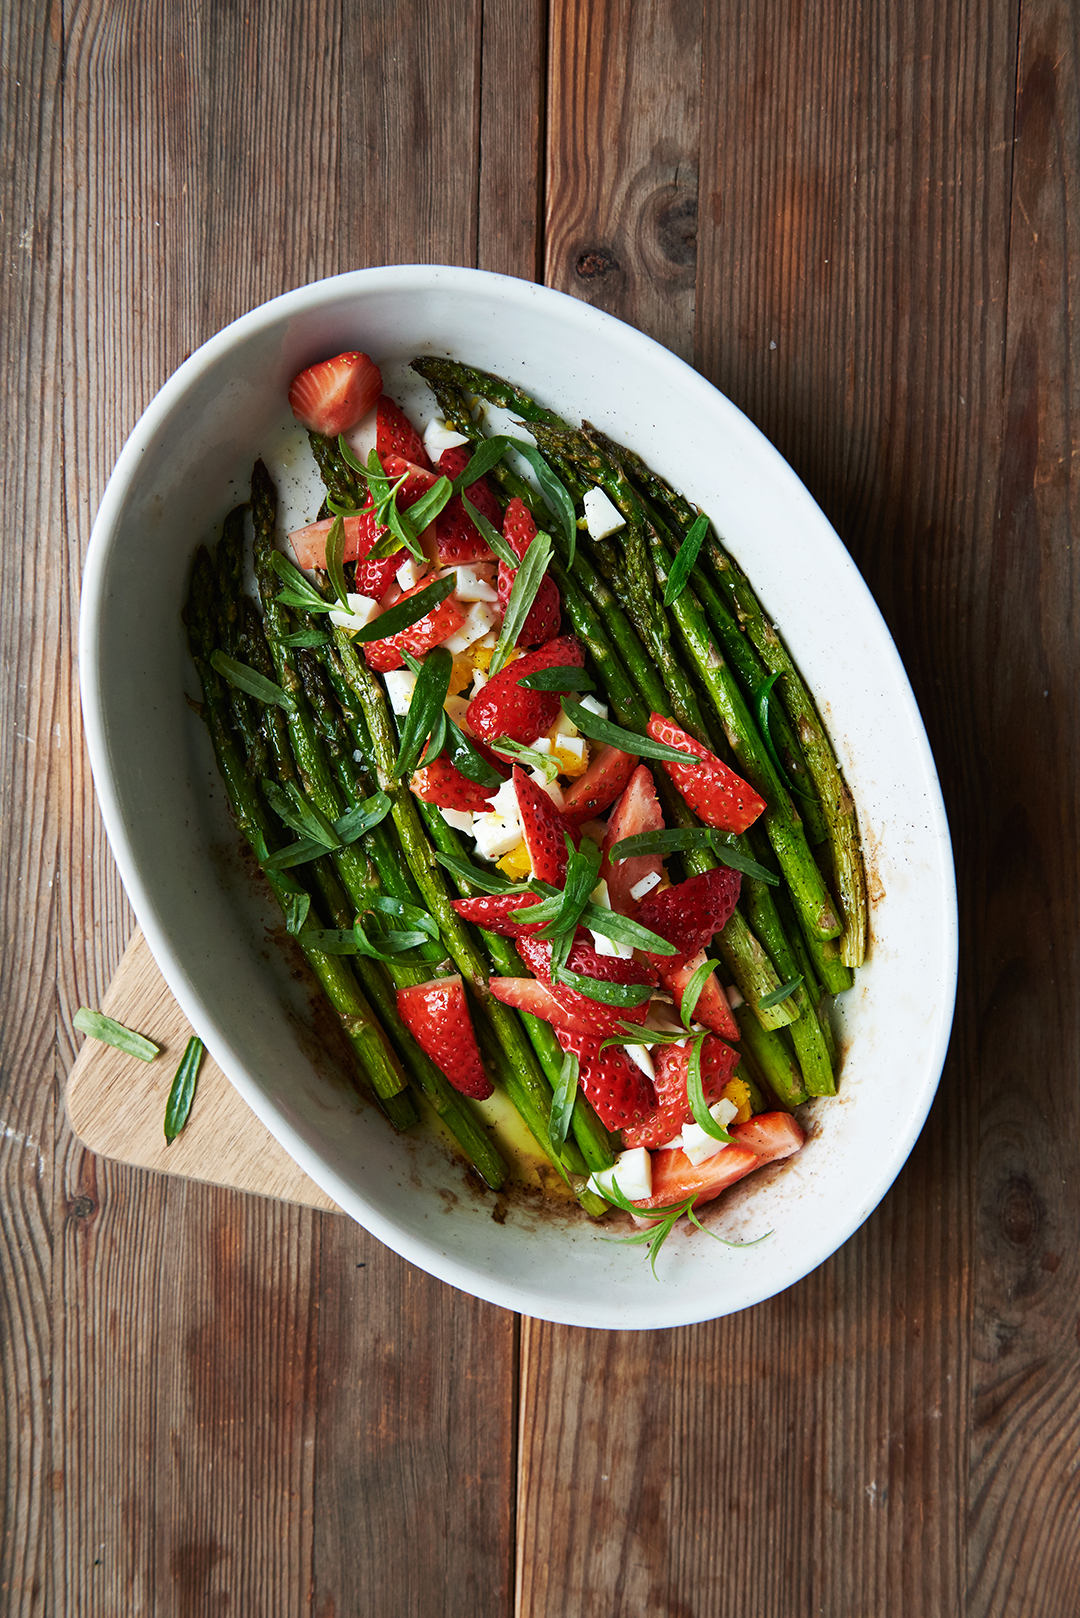 Roasted Asparagus with Strawberries, Tarragon, and Crumbled Eggs